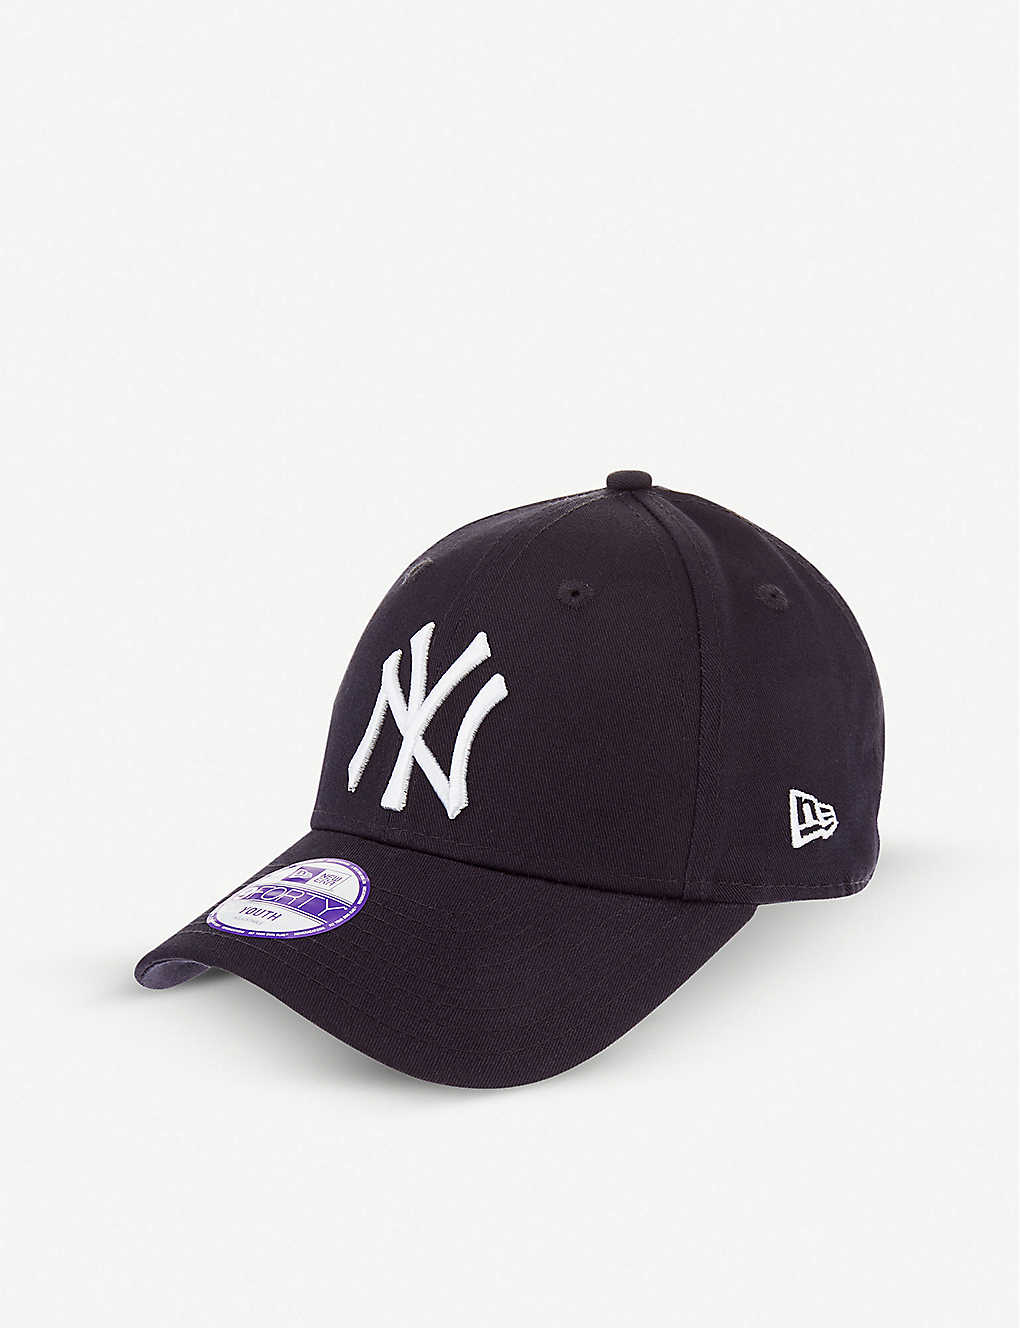 a05f2f9bb NEW ERA - New york yankee 9forty baseball cap | Selfridges.com